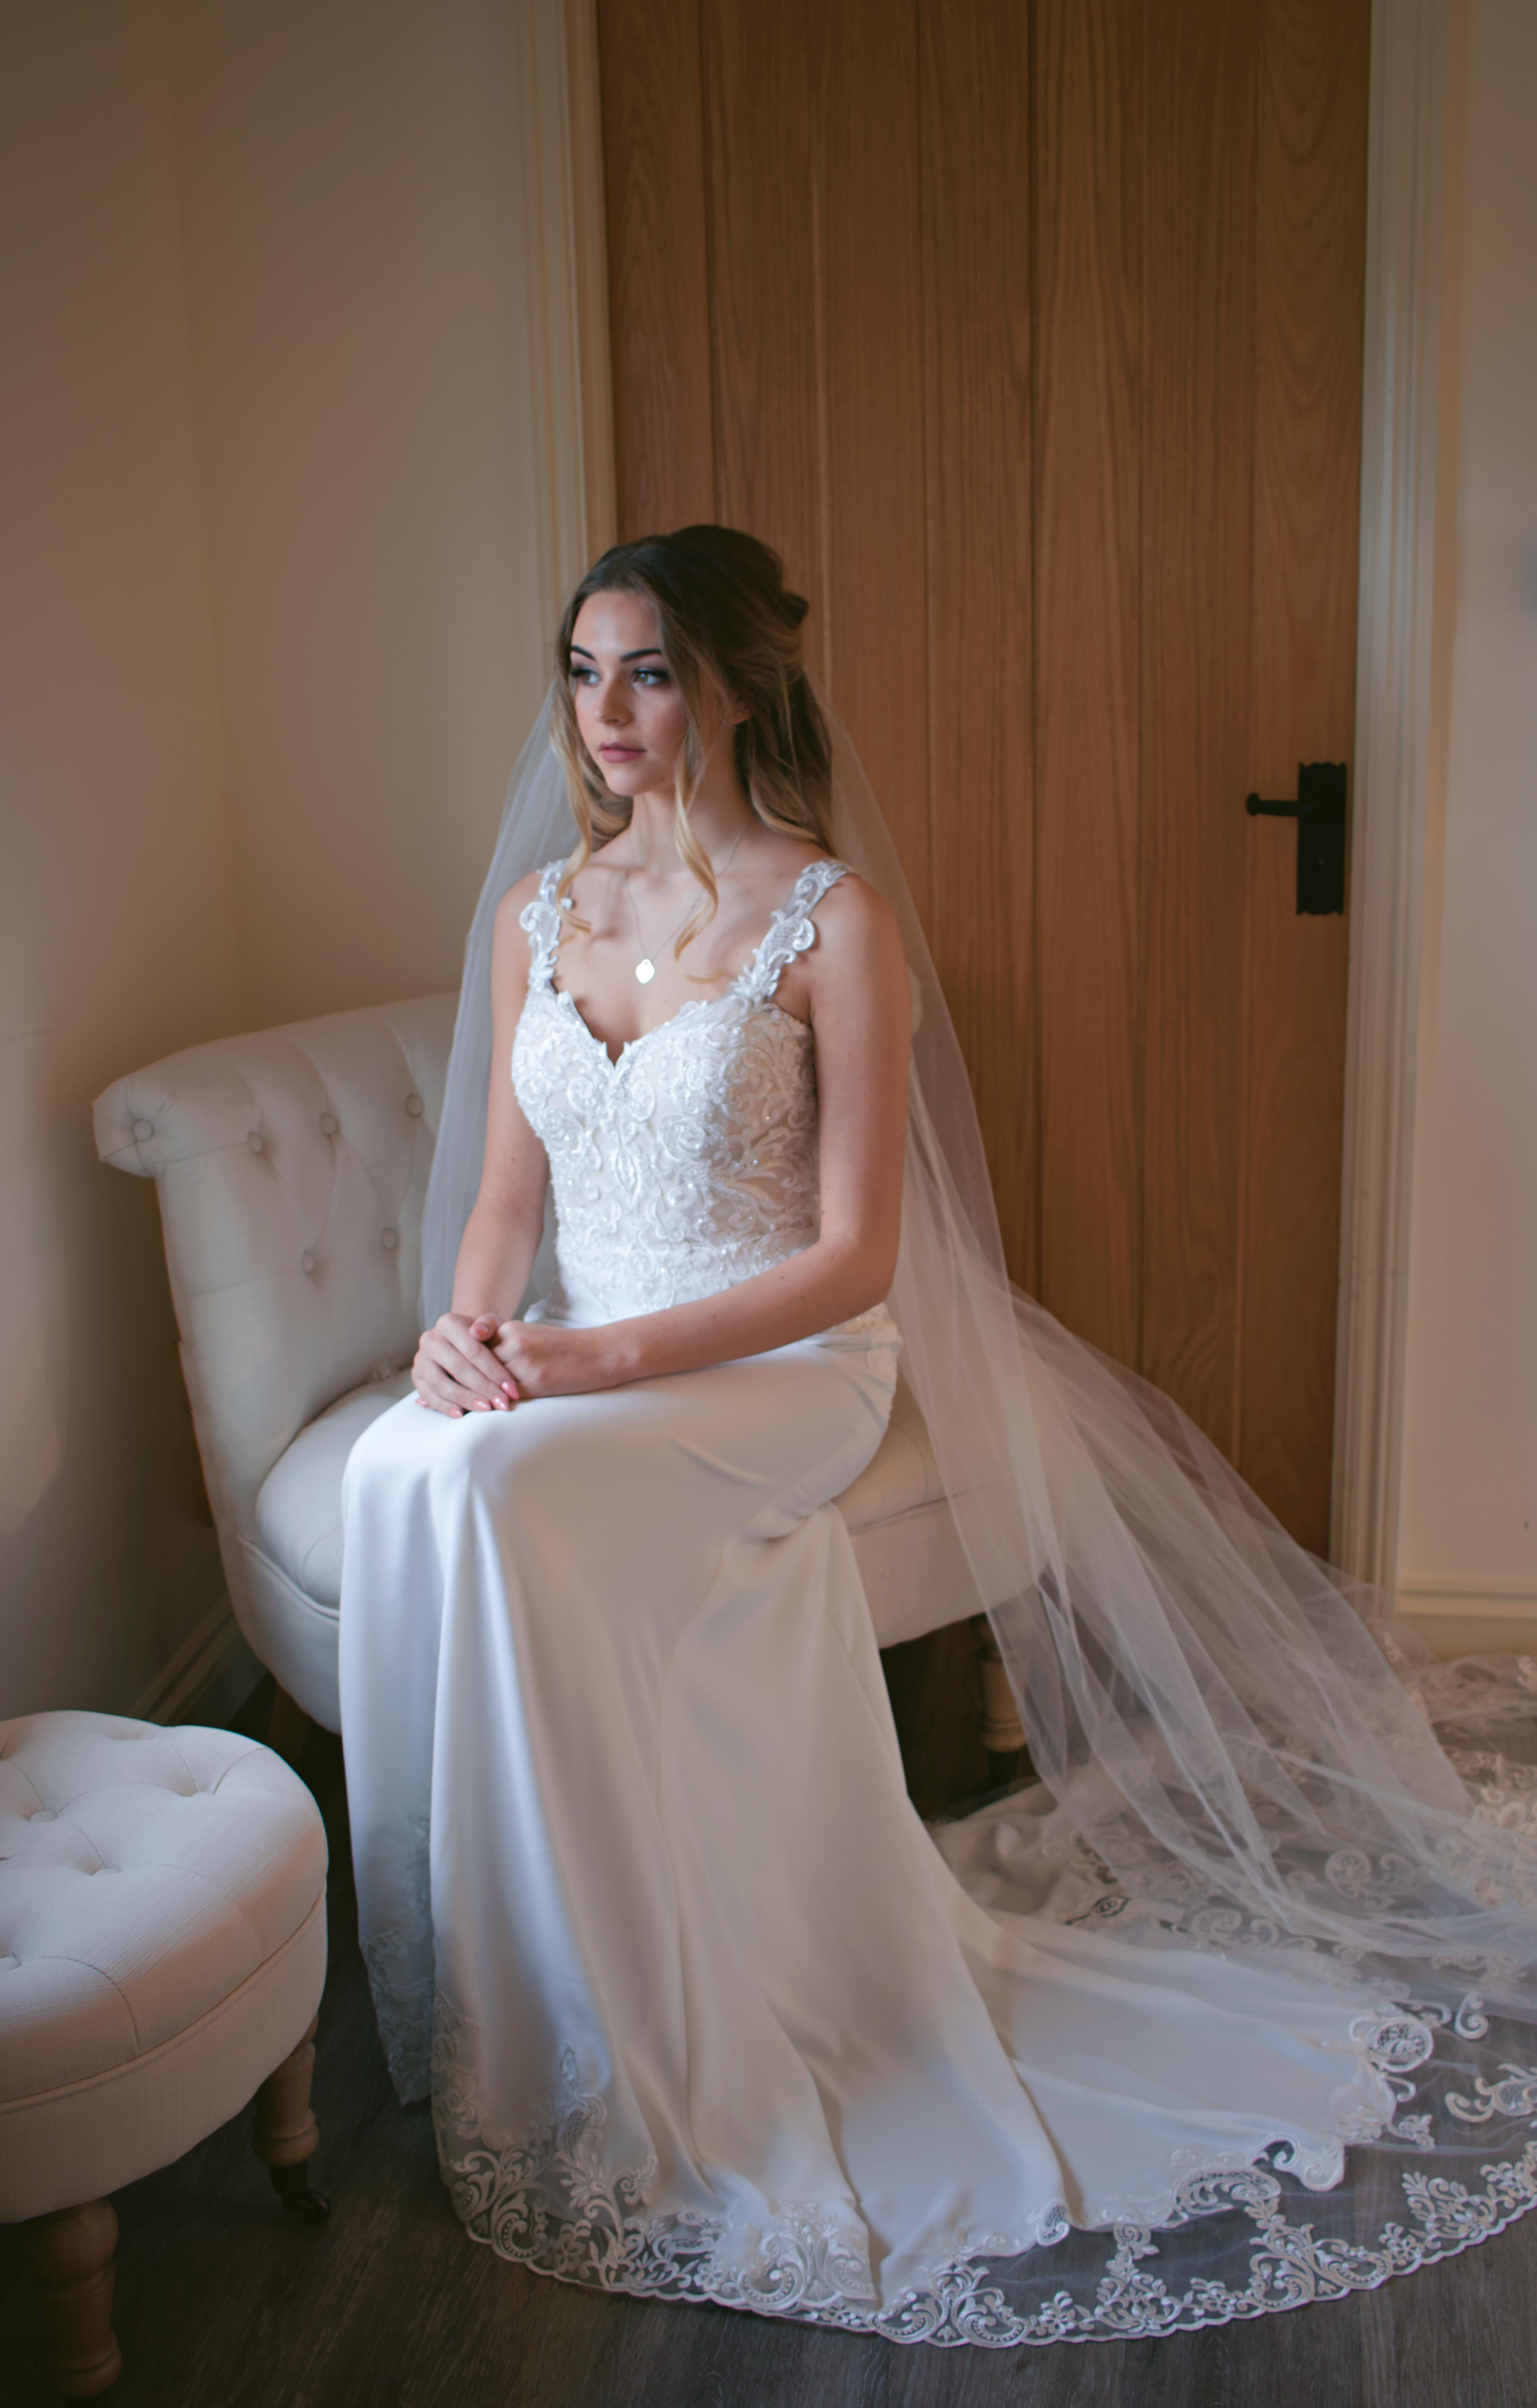 Relaxed Bridal Portrait Wedding Dress Photography